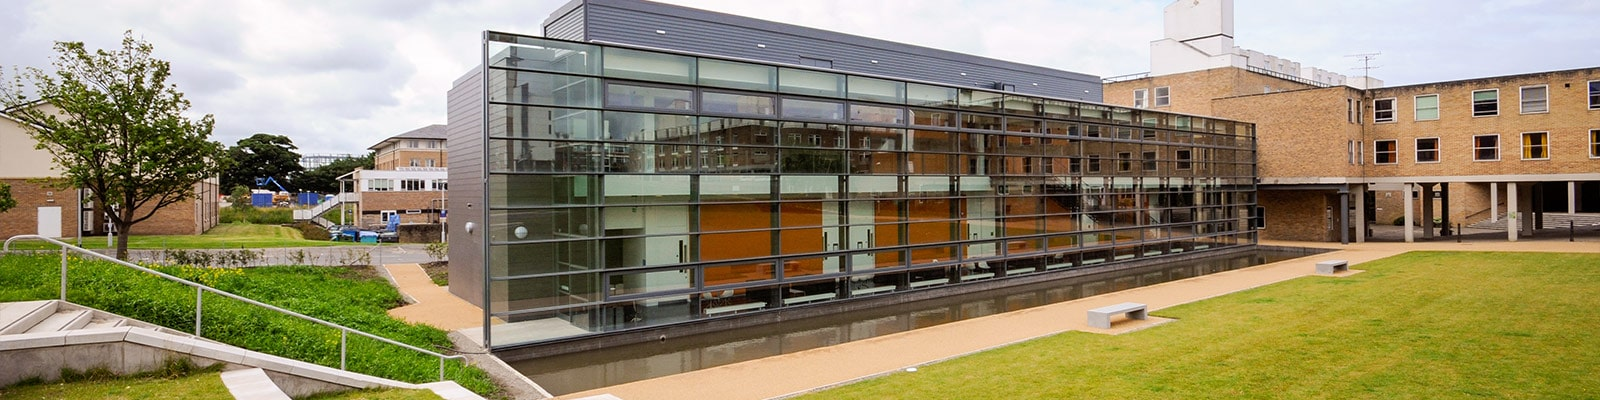 The Postgraduate Statistics Centre